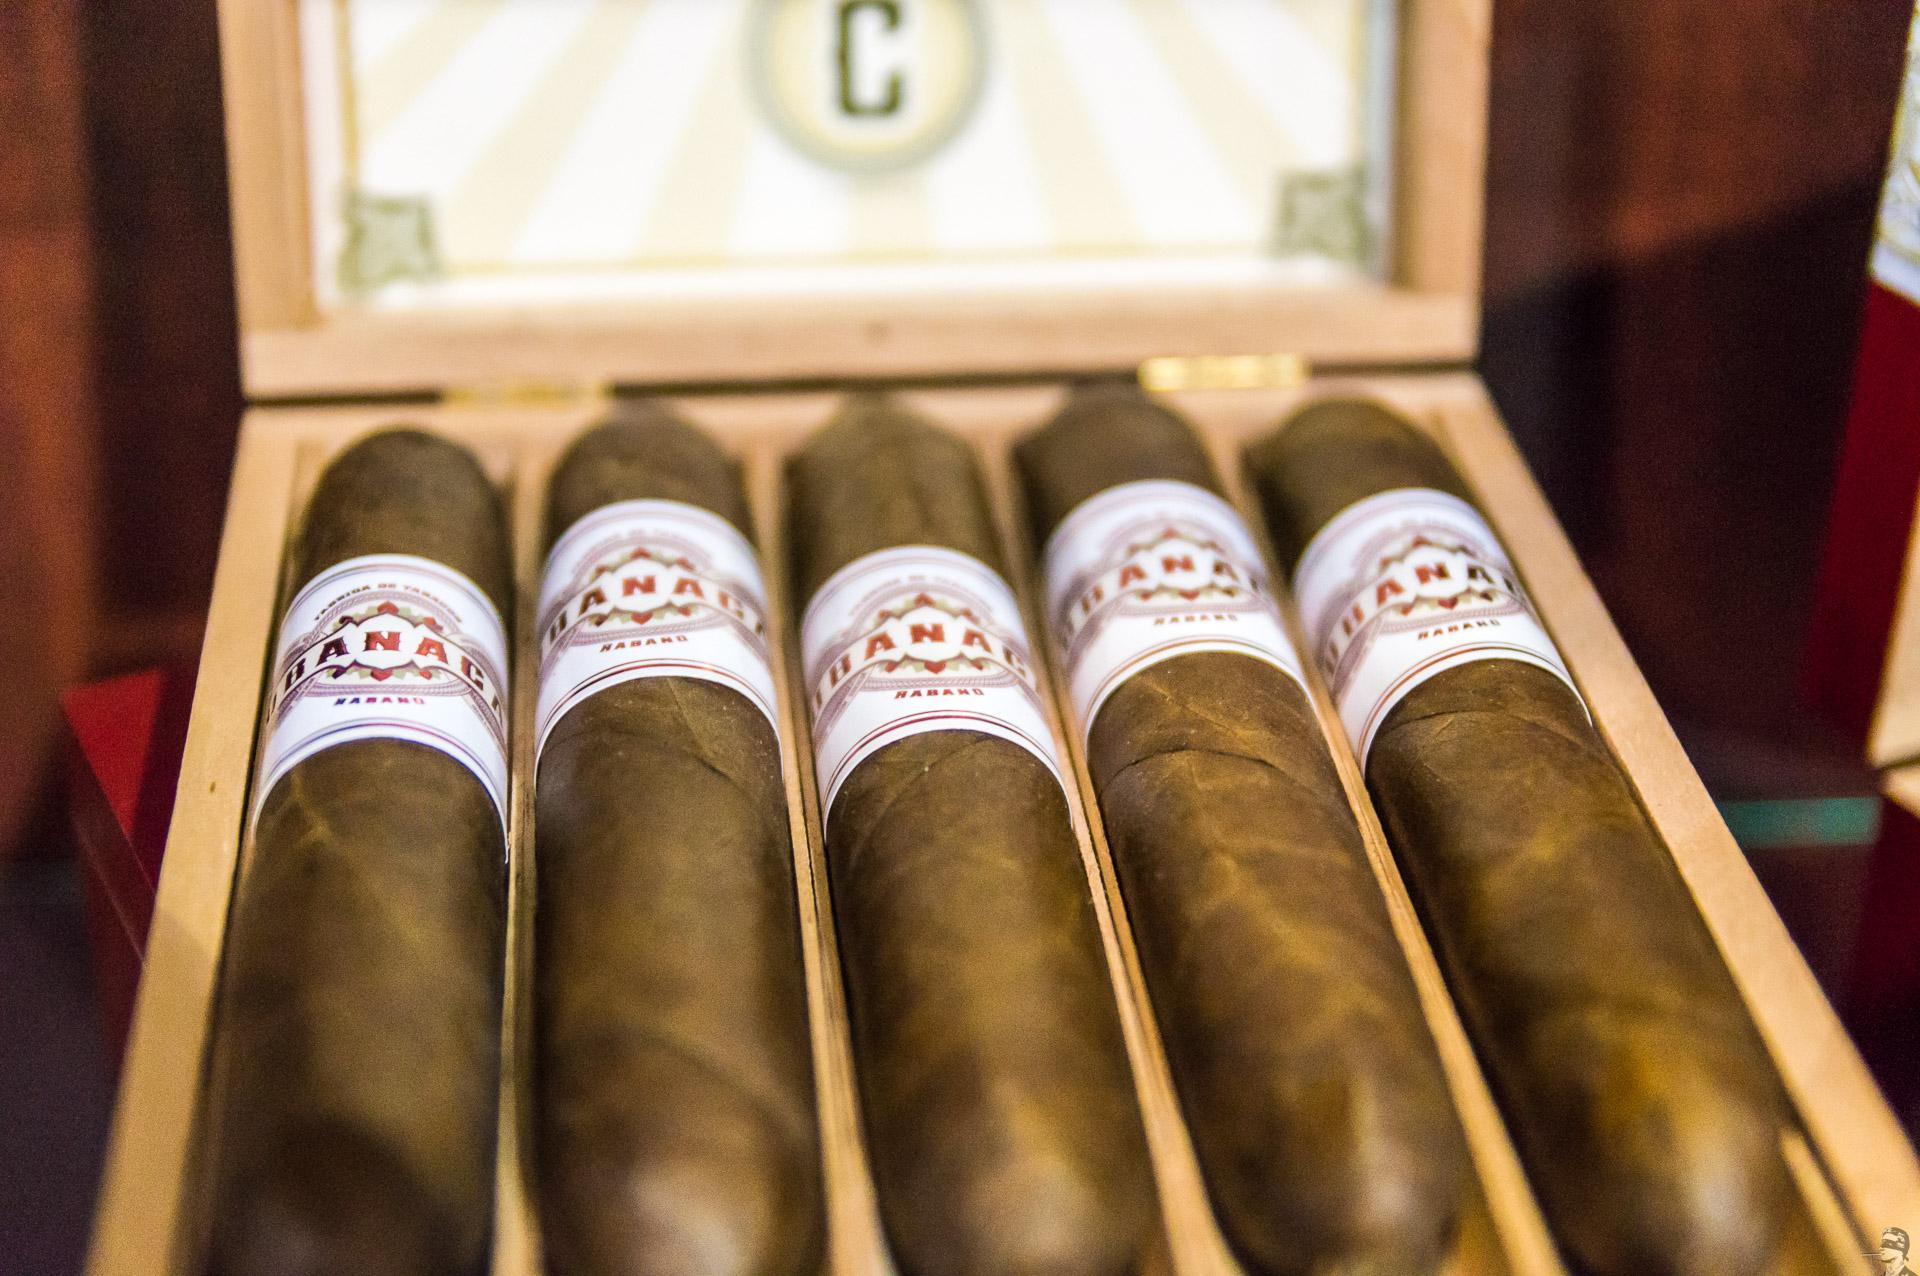 IPCPR 2014: The Show in Pictures – Cubanacan, Cuban Stock, Davidoff and Don Lucas